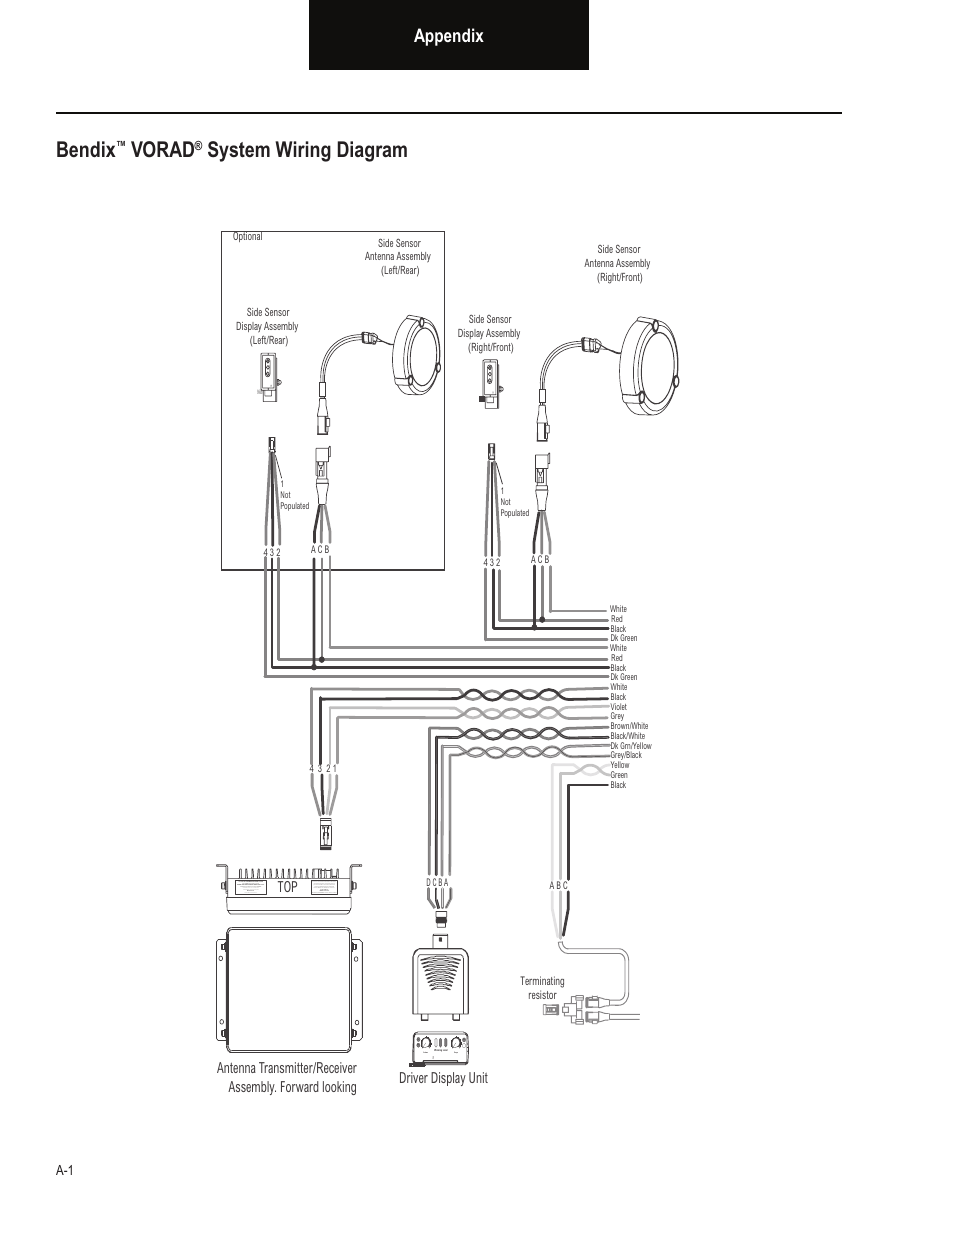 Bendix, Vorad, System wiring diagram | Appendix | Bendix Commercial Vehicle  Systems VORAD EVT